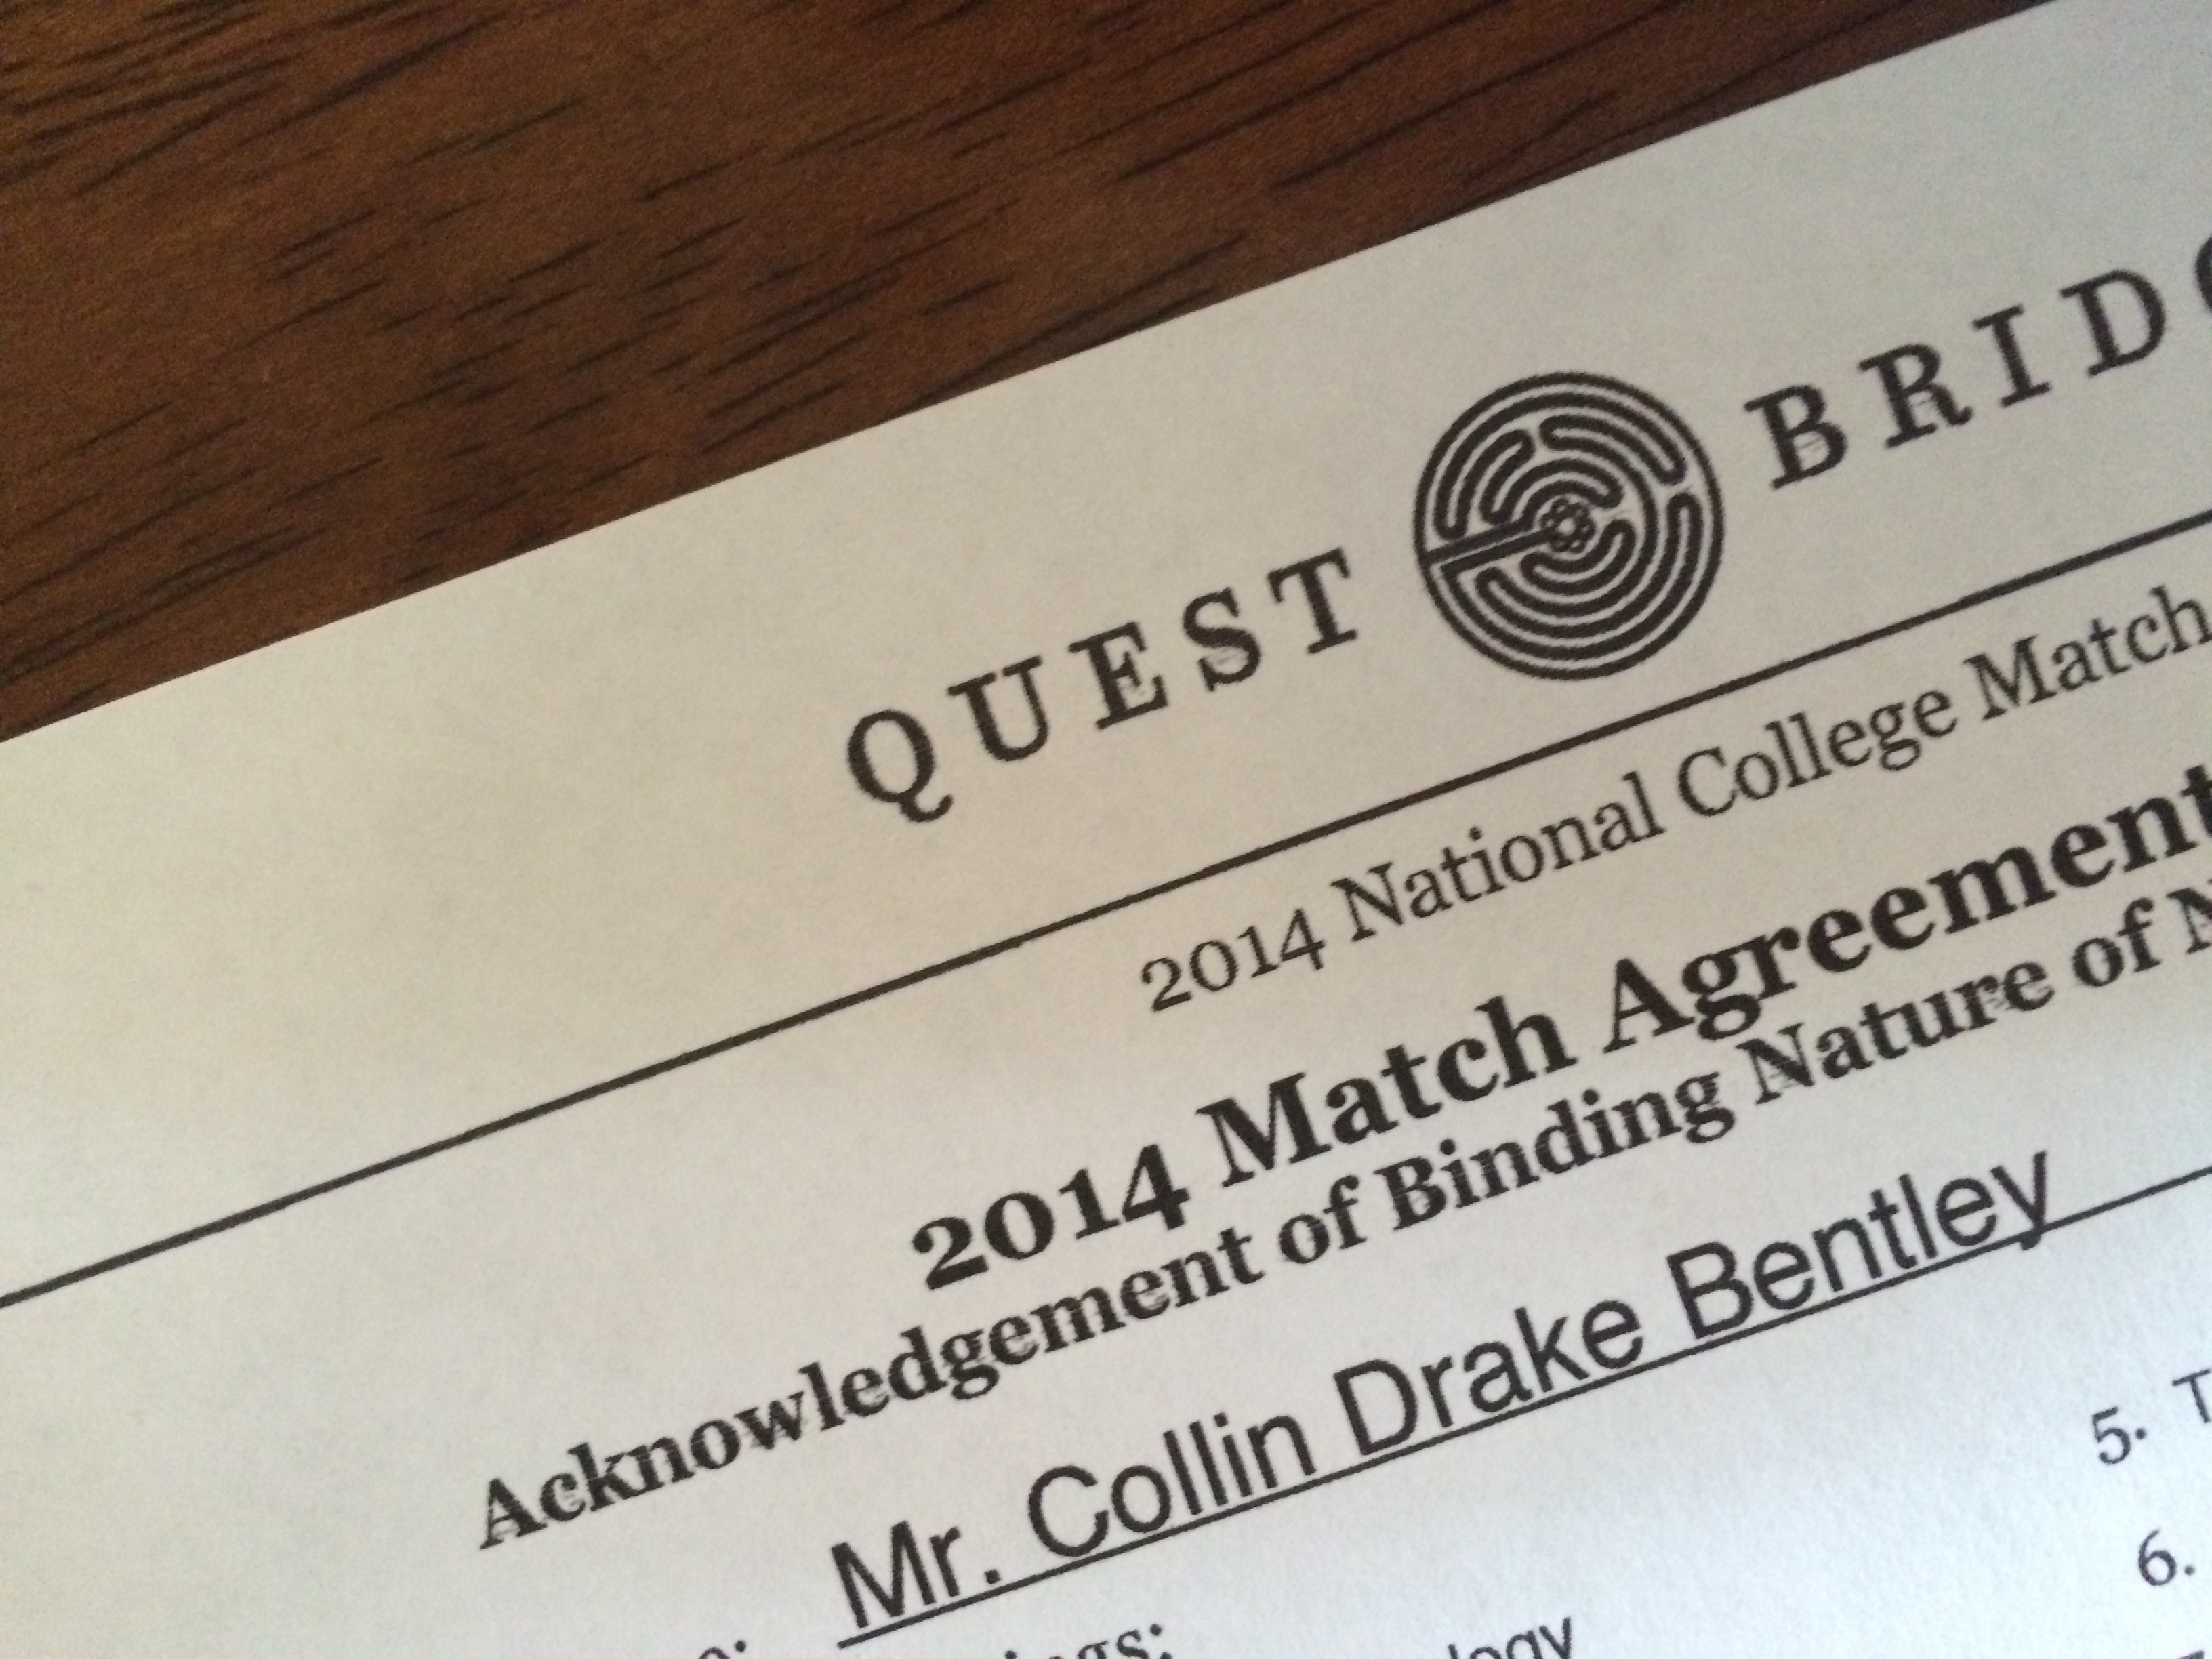 questbridge national college match essay prompts